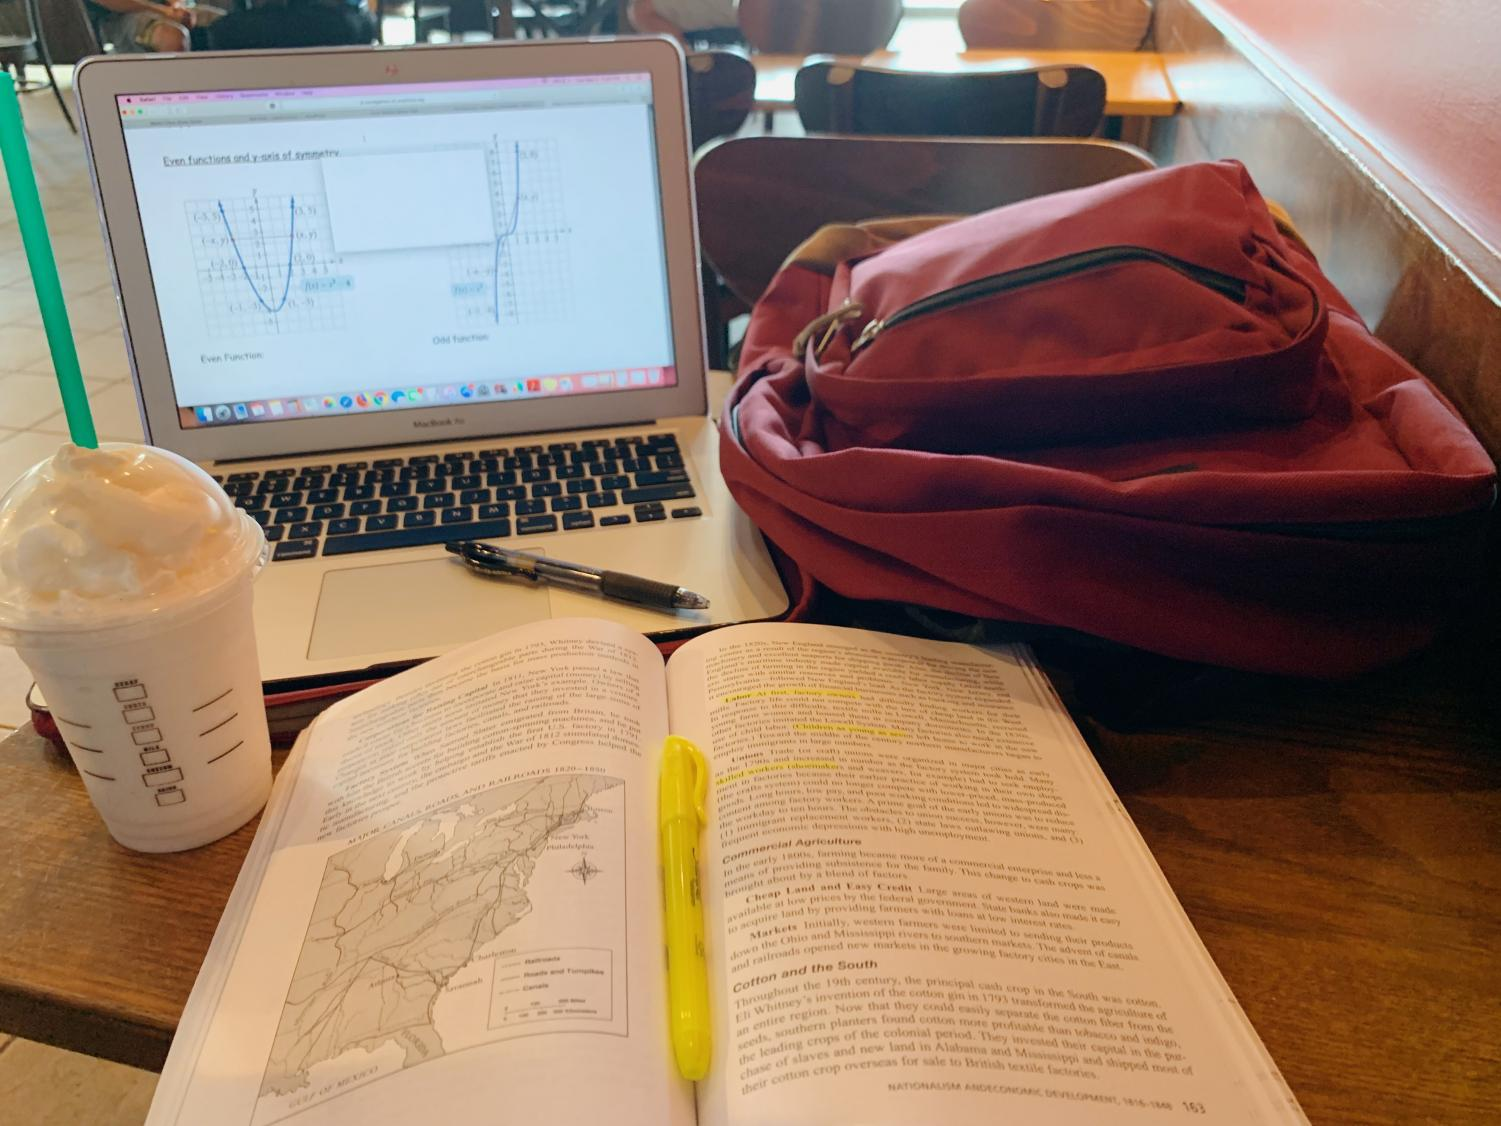 Pictured above are typical, and essential, study materials for after-school learning: a backpack, a pencil, notes and a caffeinated drink from Starbucks.